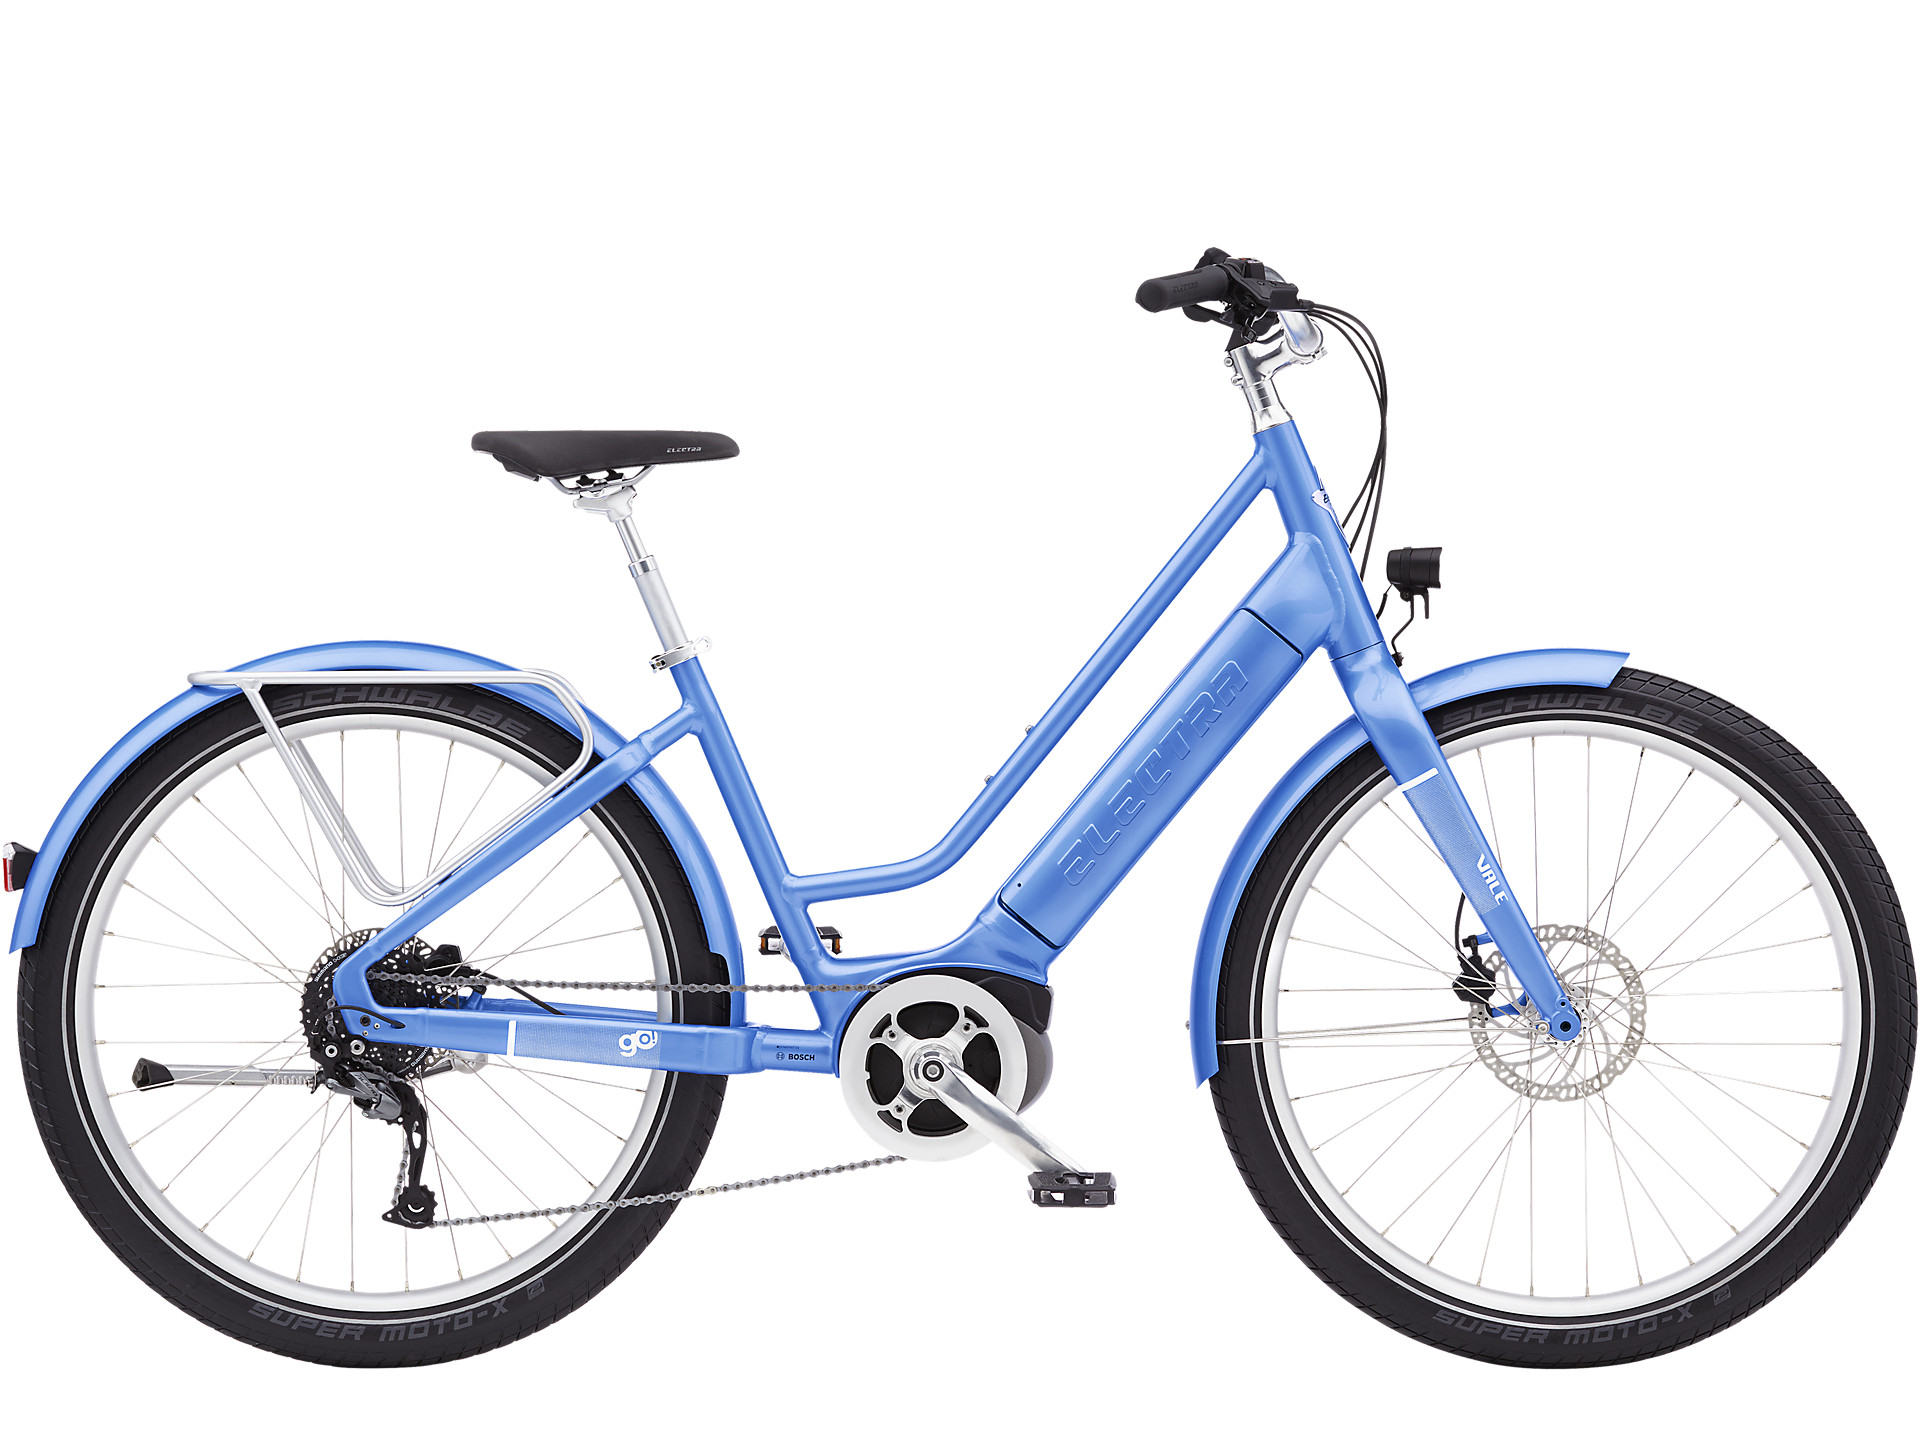 Electra Vale Go! premium electric bicycle